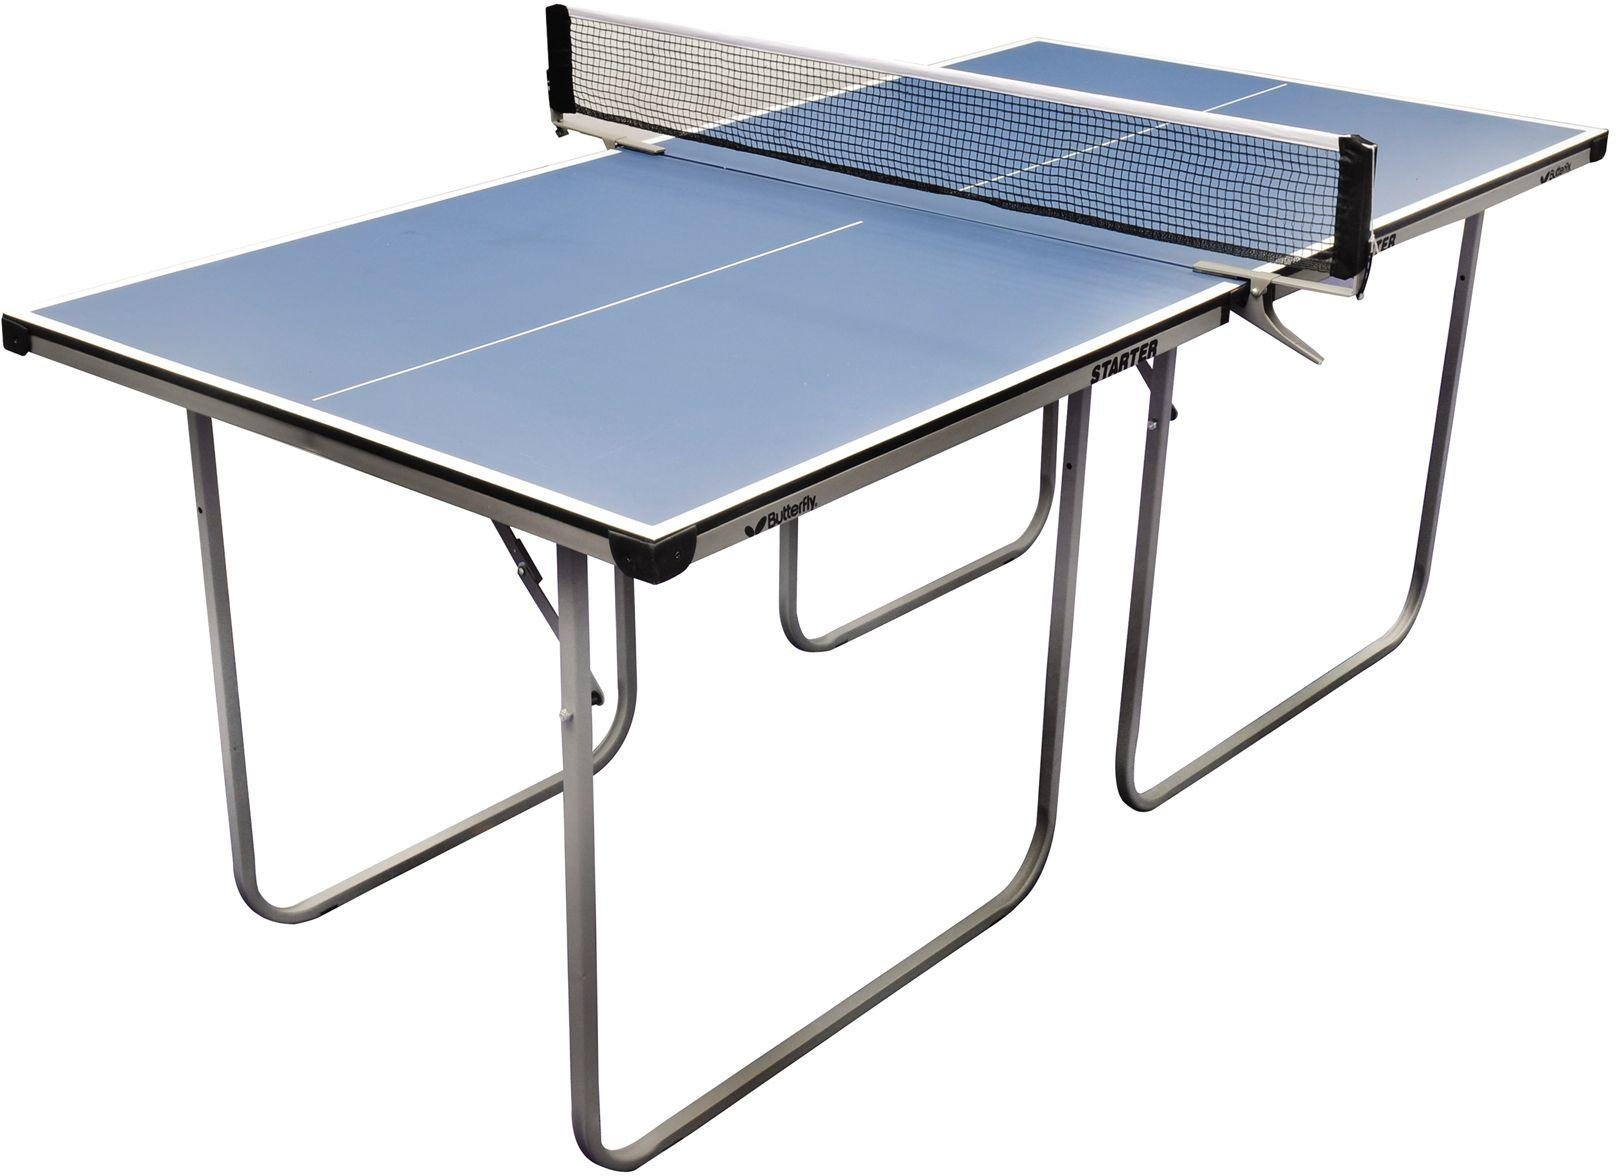 Image of Butterfly - Starter 6 x 3 Table Tennis Table